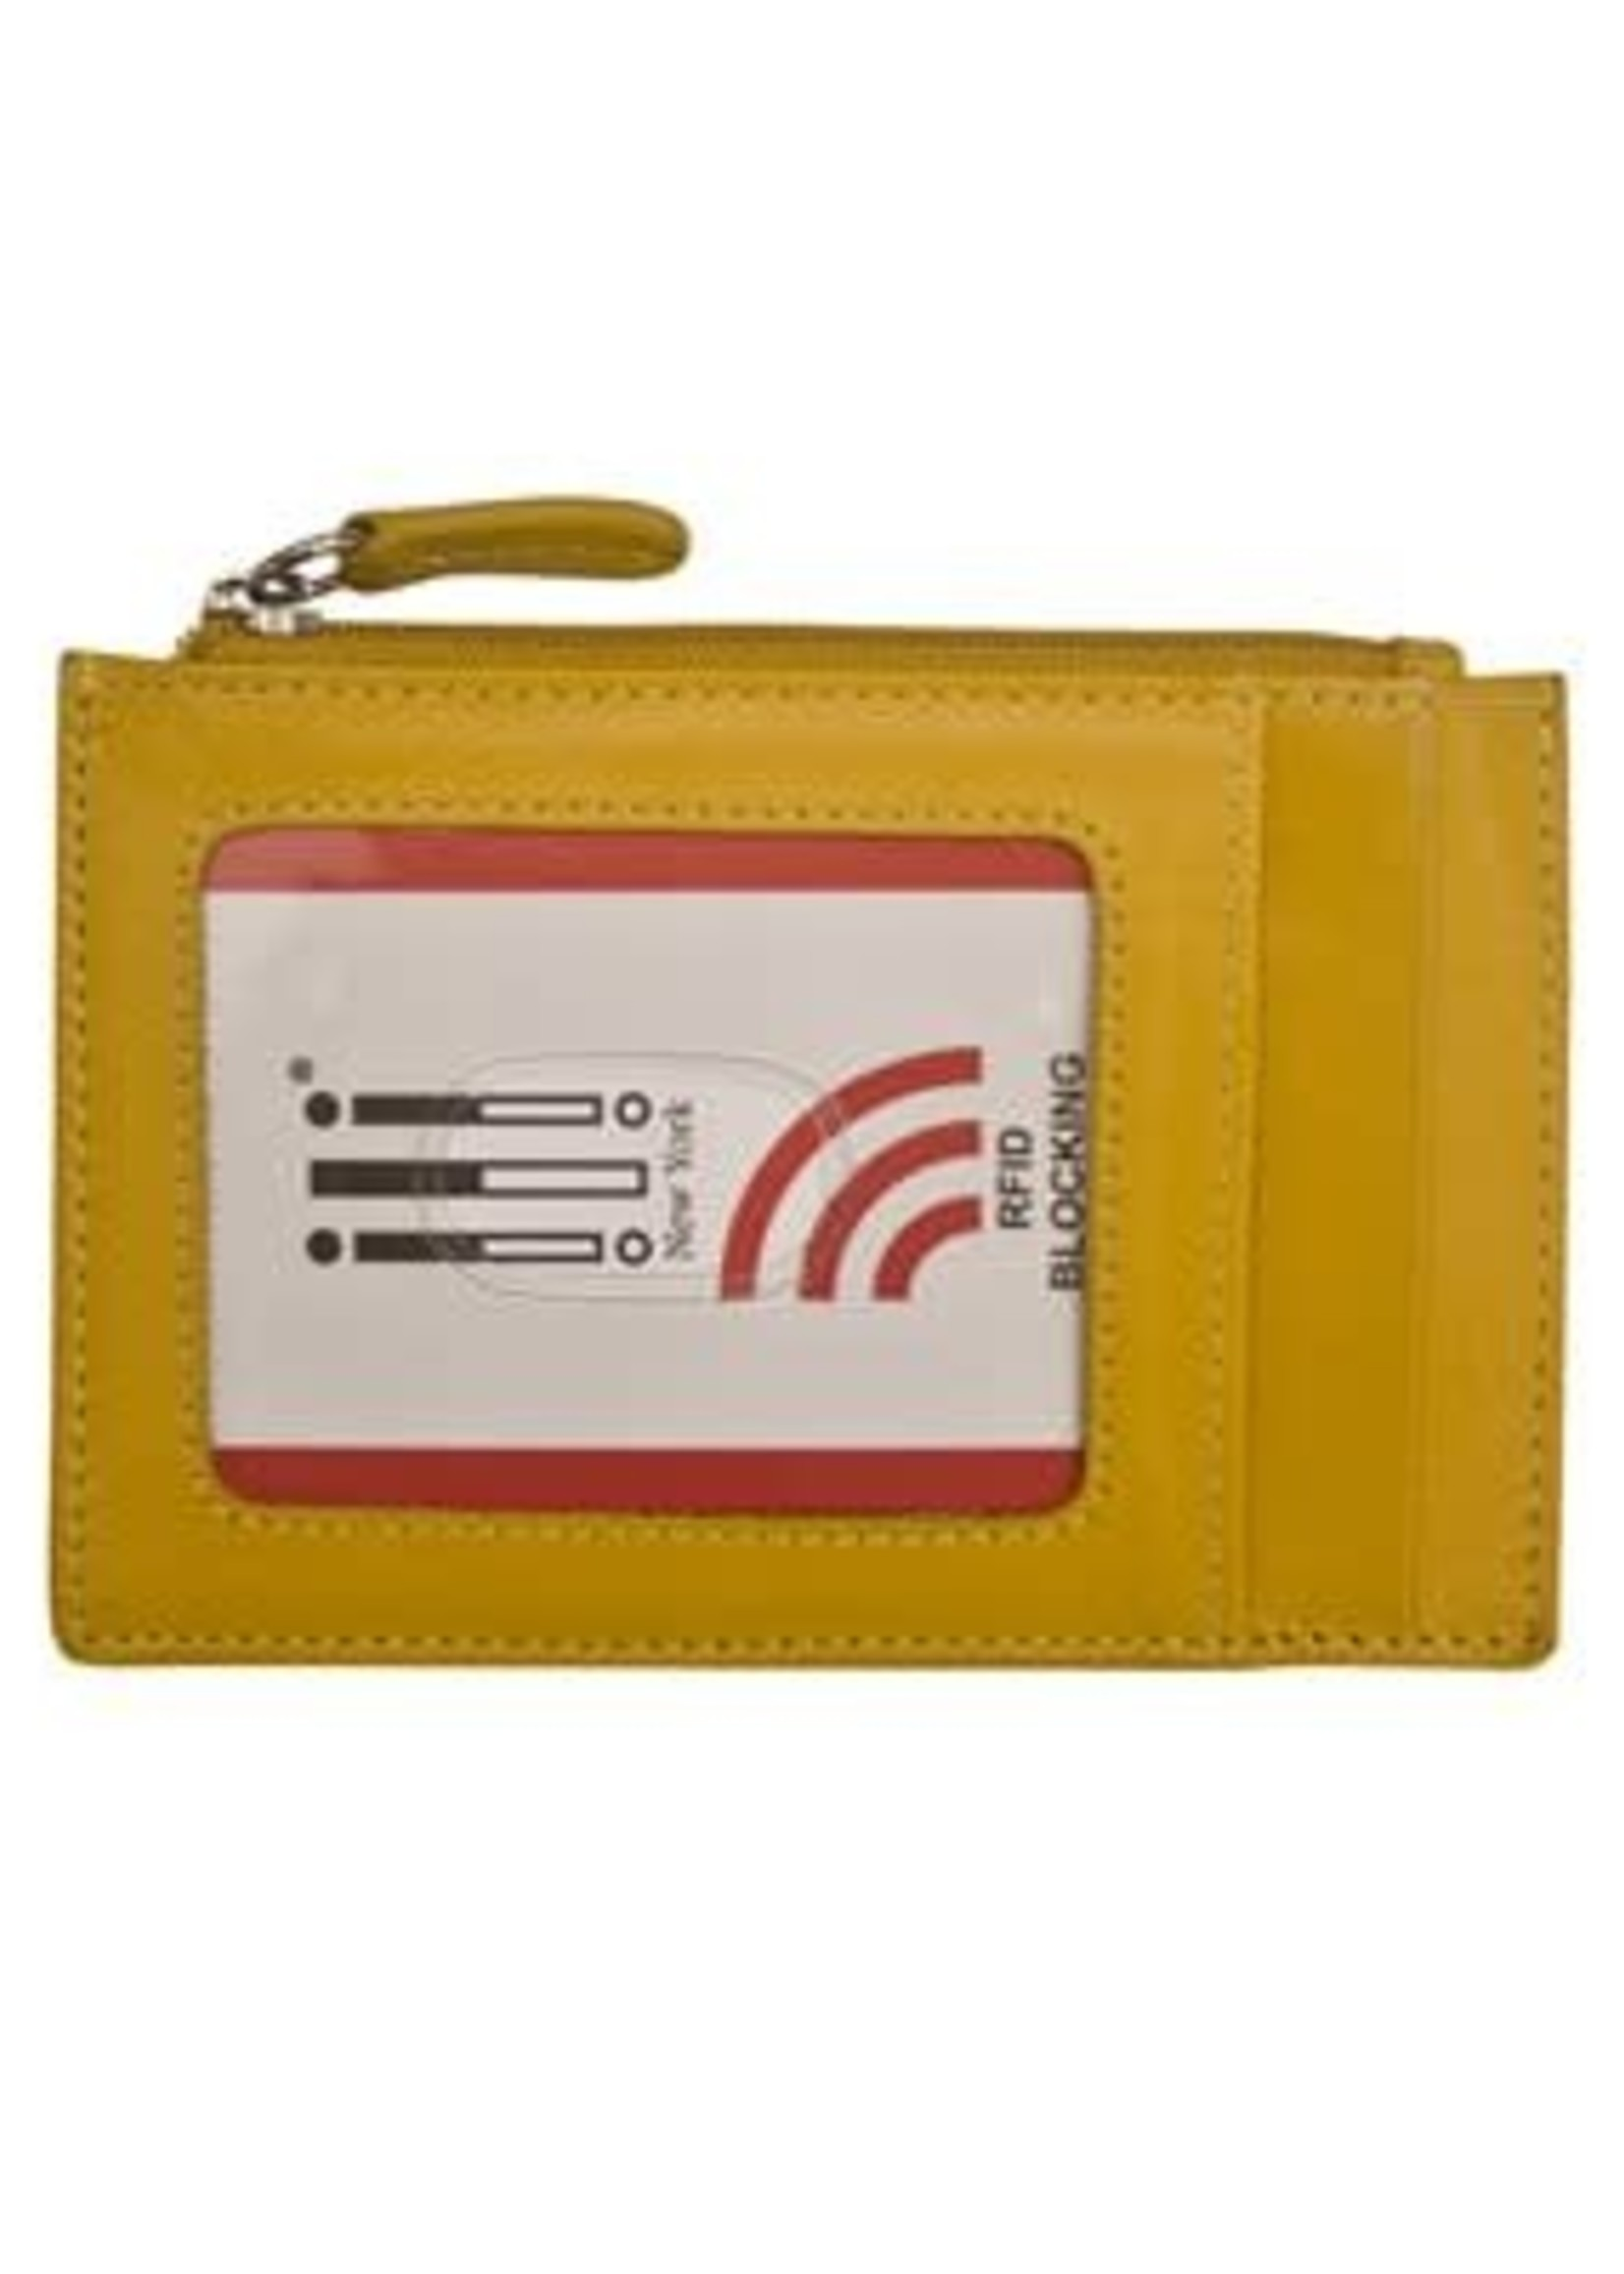 Leather Handbags and Accessories 7416 Yellow - RFID Card Holder